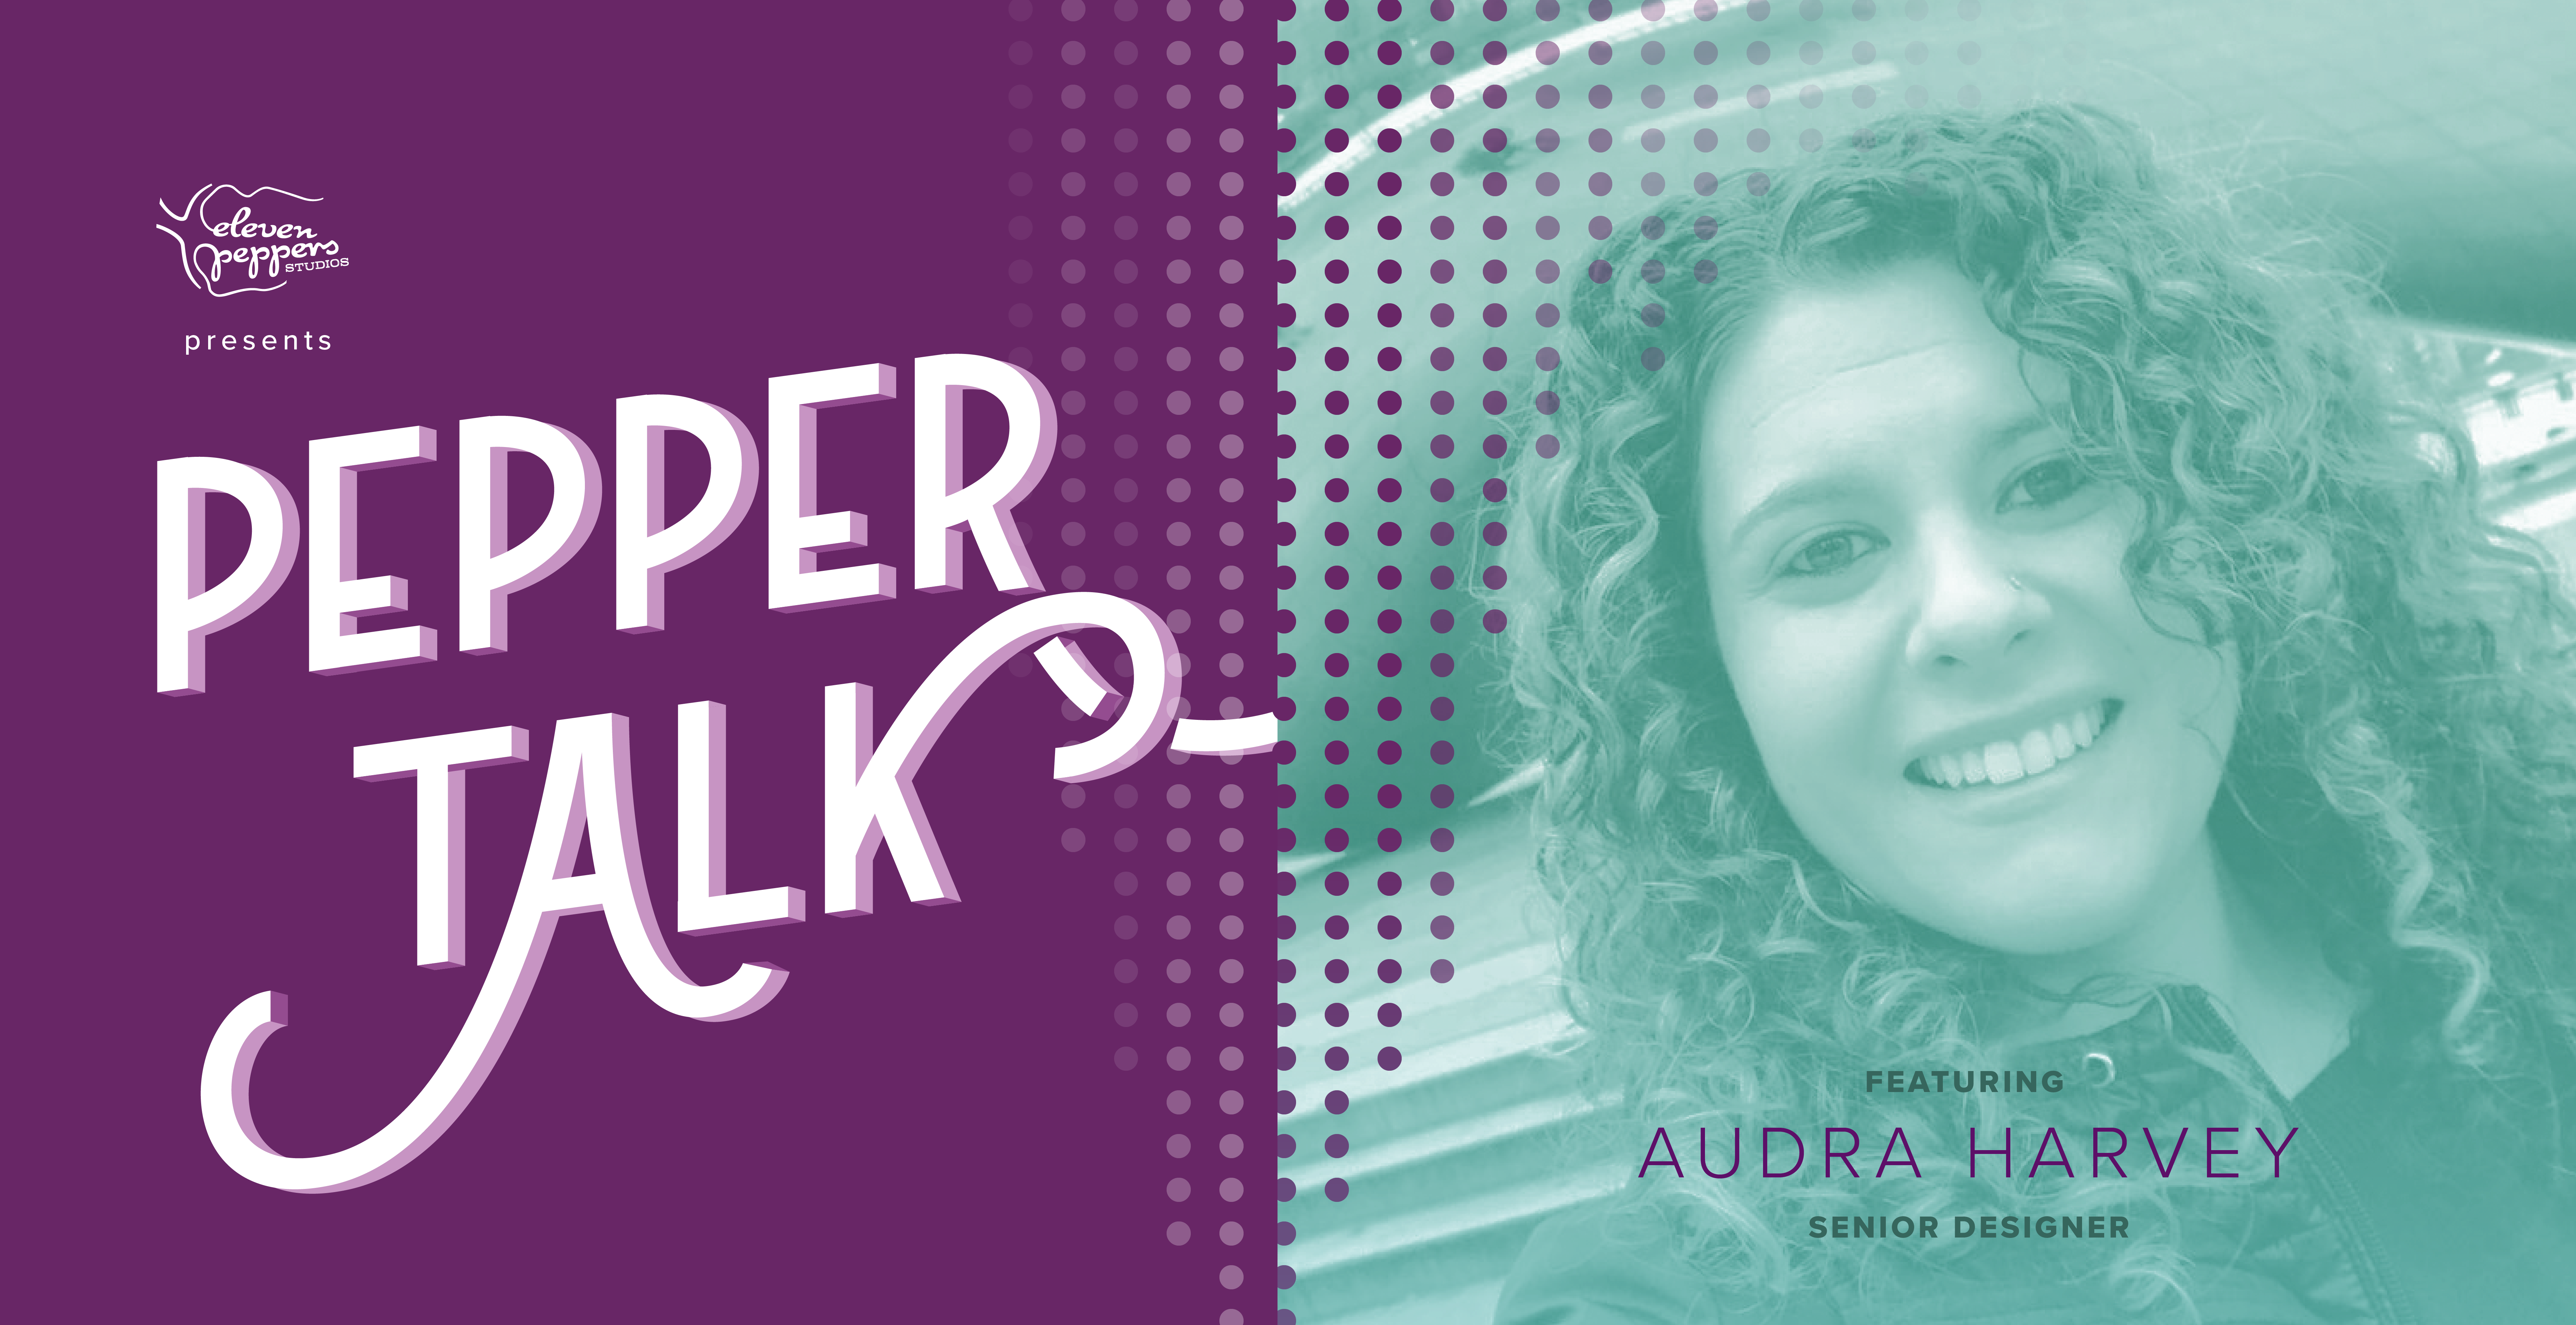 Pepper Talk with Audra Harvey